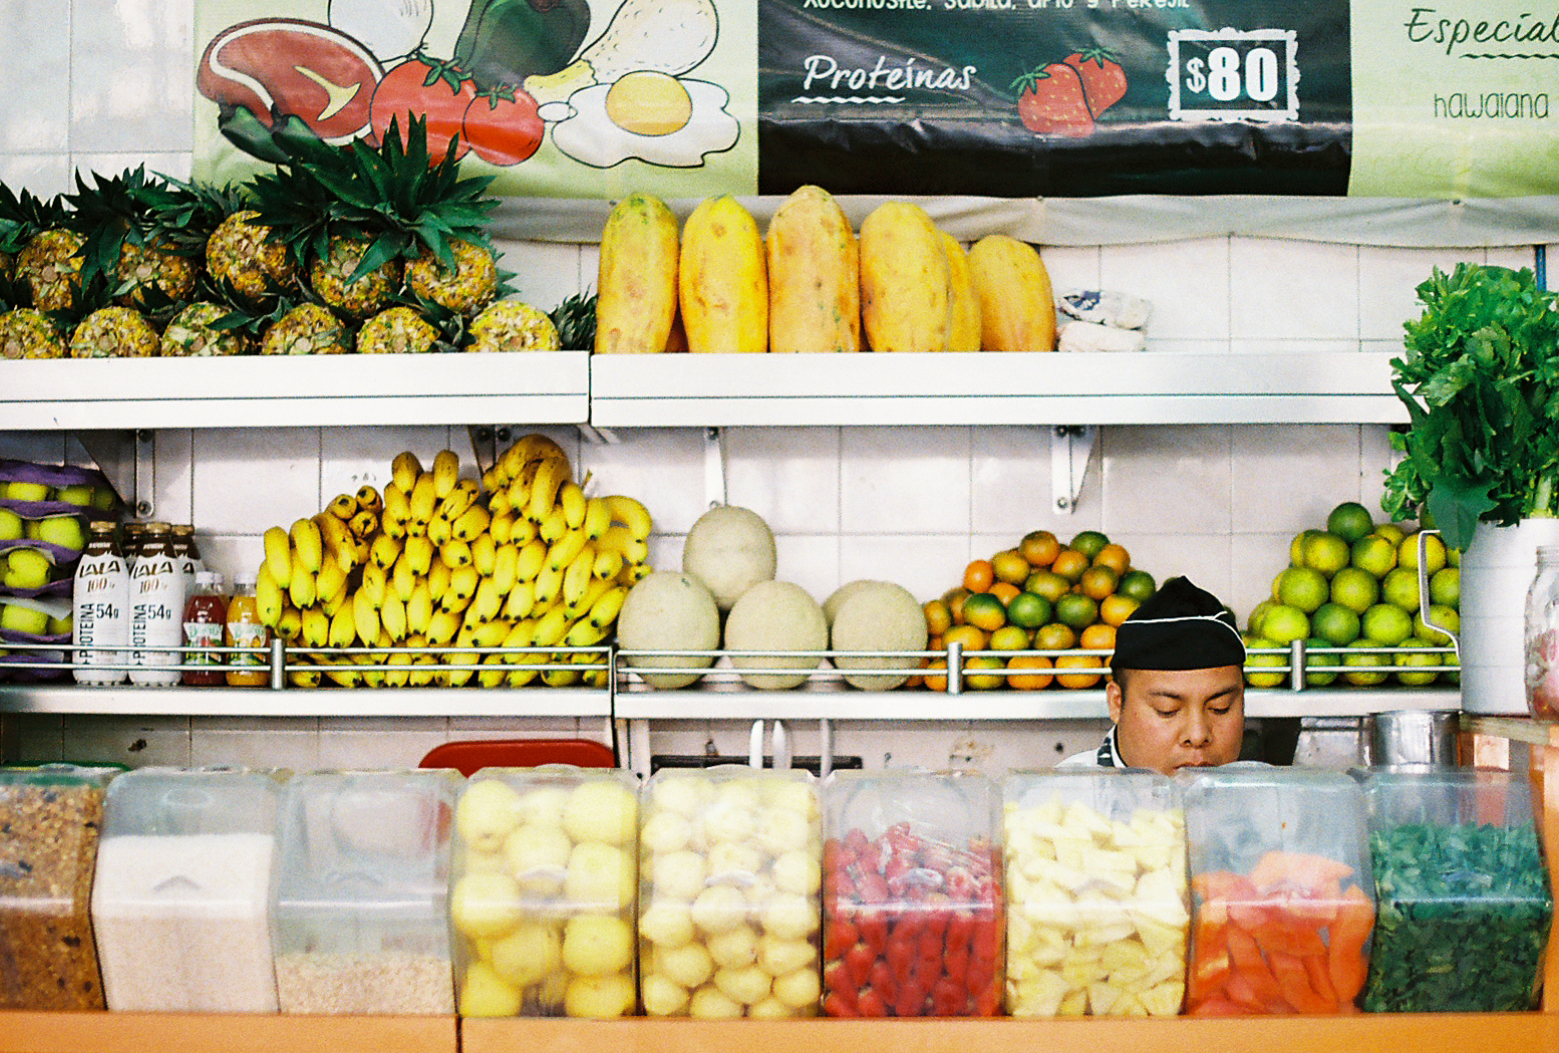 Jugo de Agua. A man behind the counter in front of a wall of fruit in a juice or smoothie store. Mexico City 35mm film. Photographed by Nick Barry